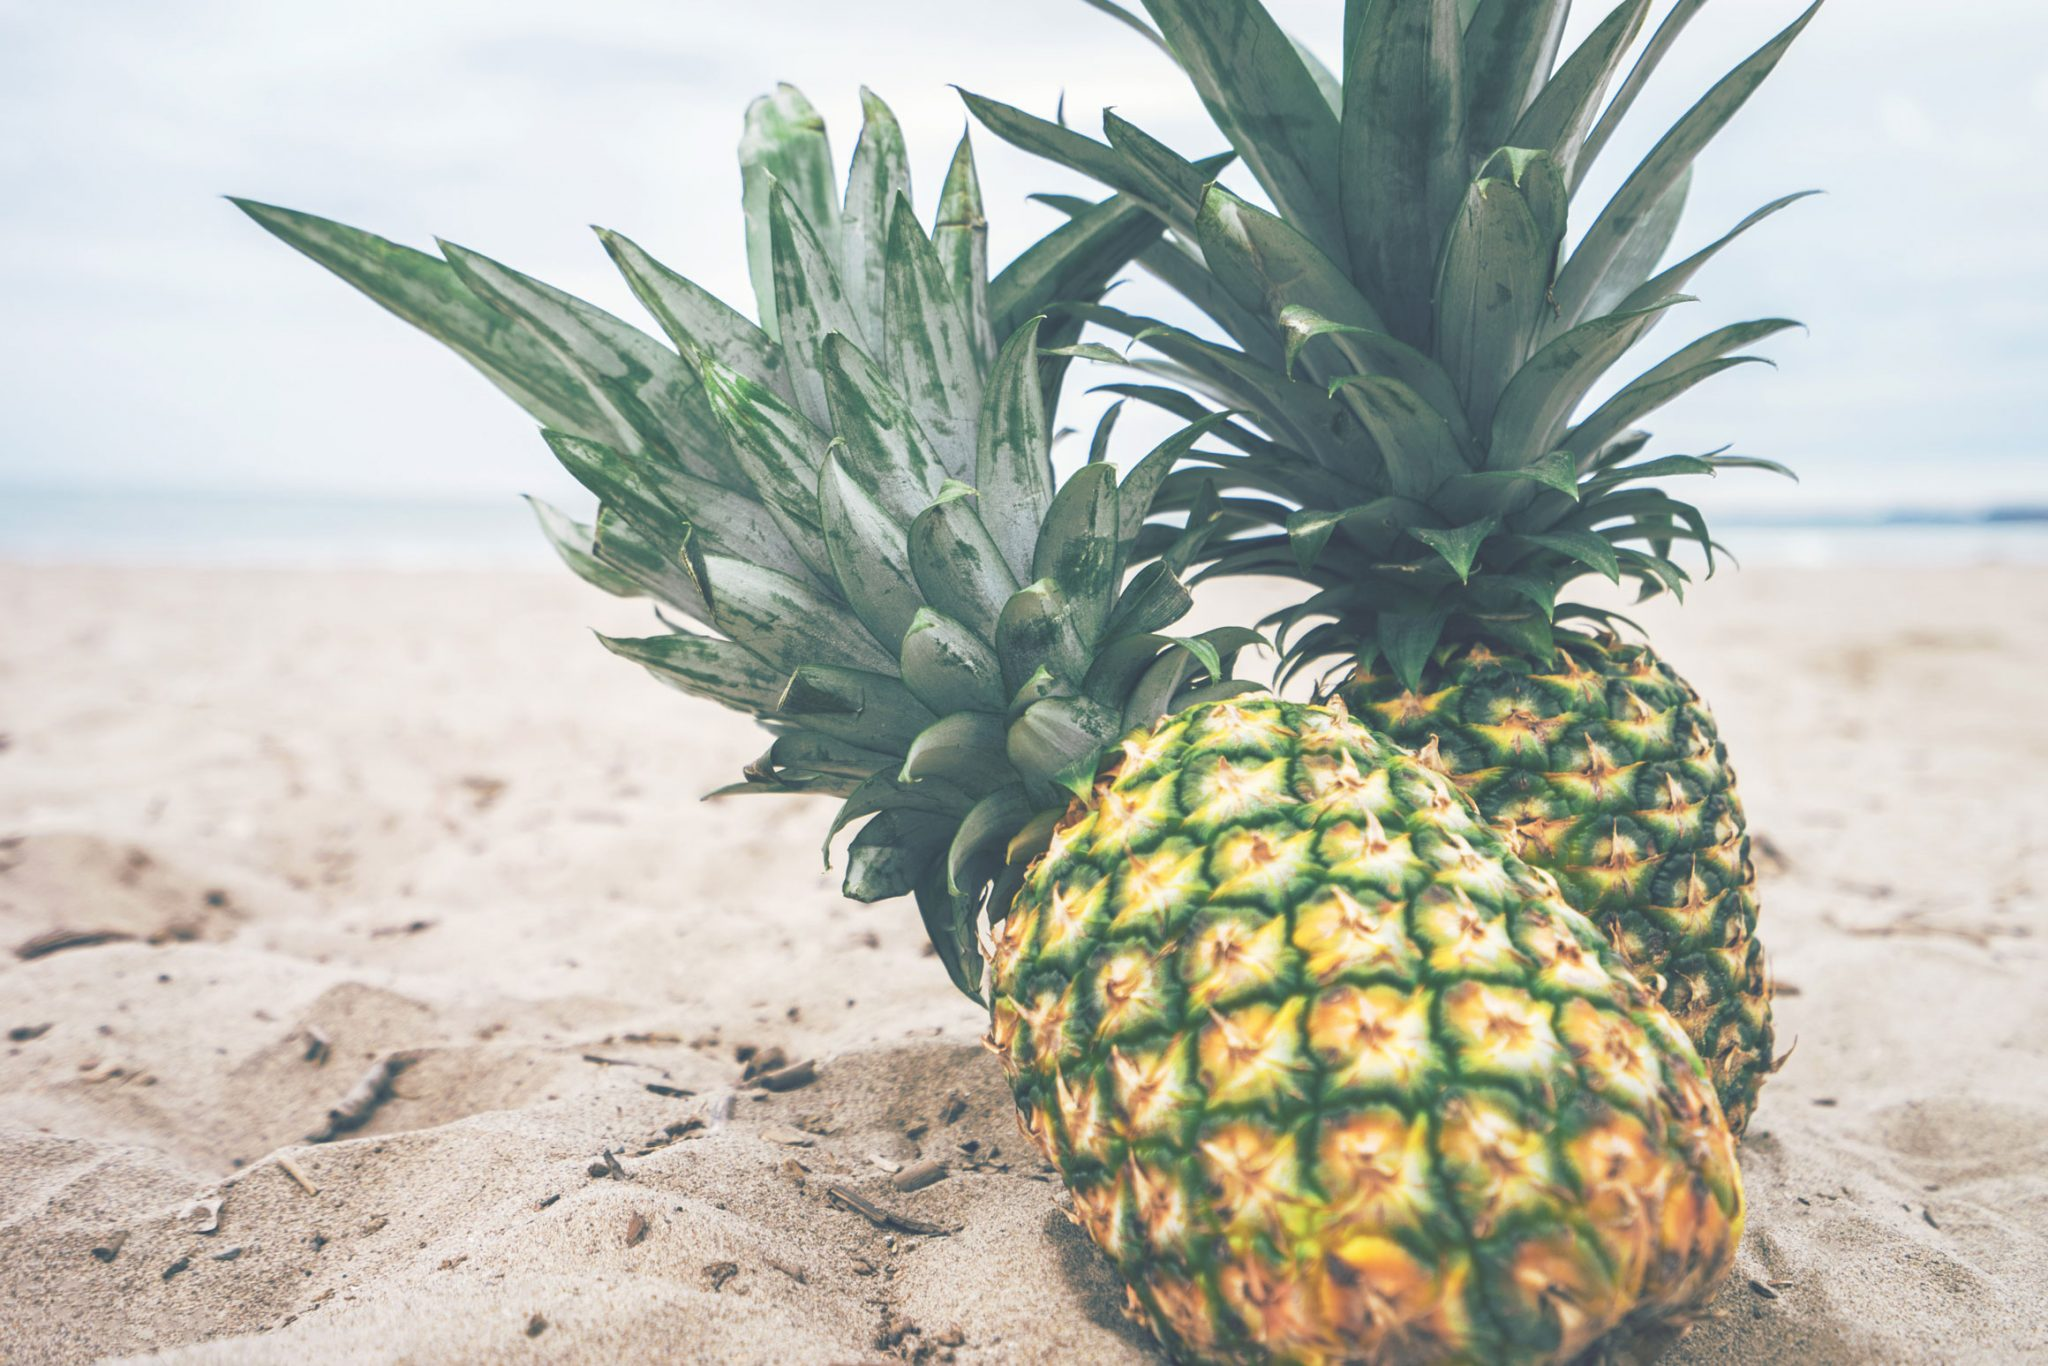 Ananas na plaži; Foto: Pineapple Supply Co. from pexels.com